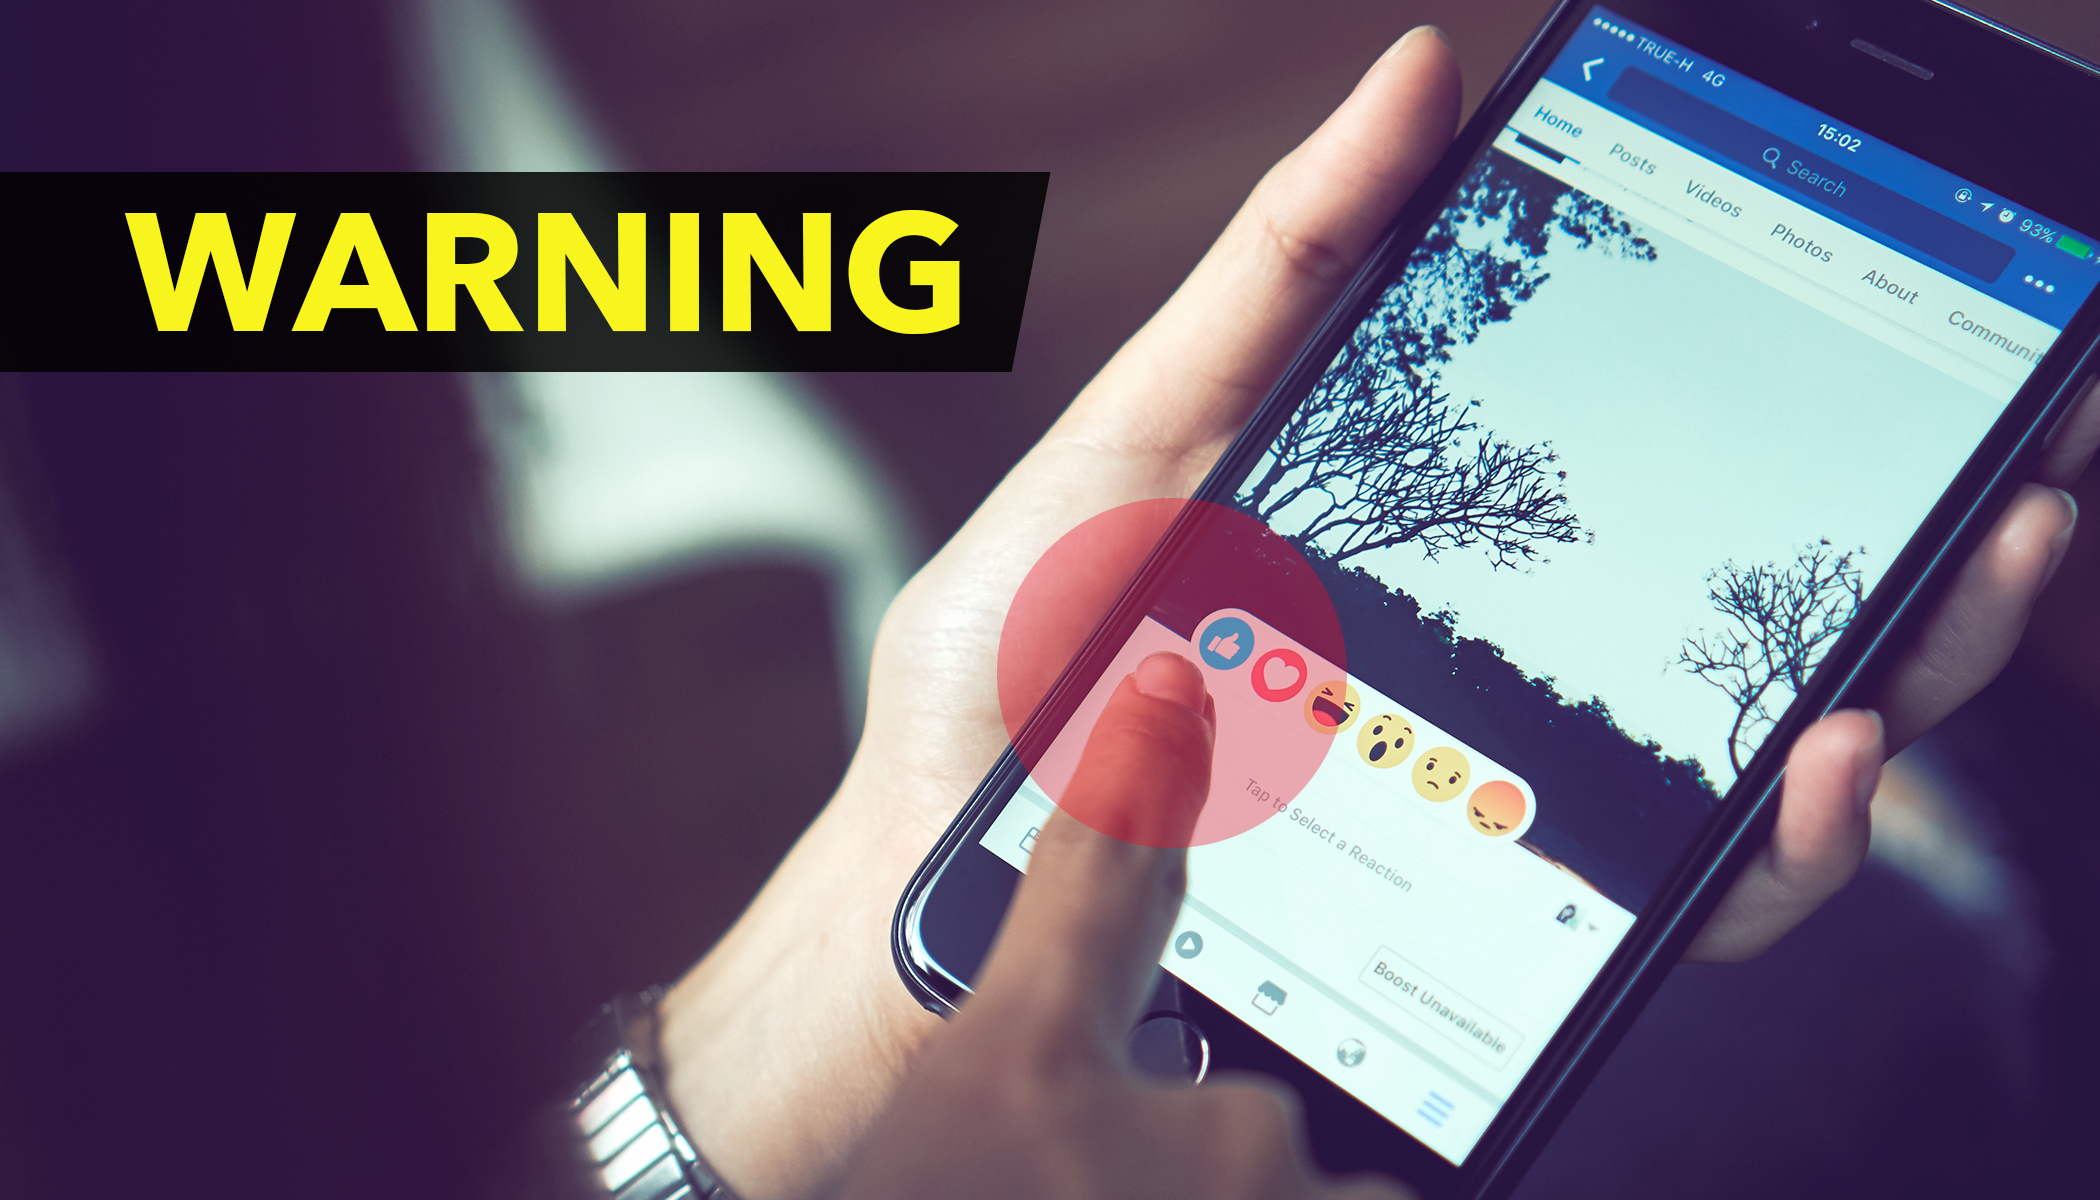 Beware: 'Liking' or 'Commenting' on Trending Facebook Posts Can Lead You Into Scam